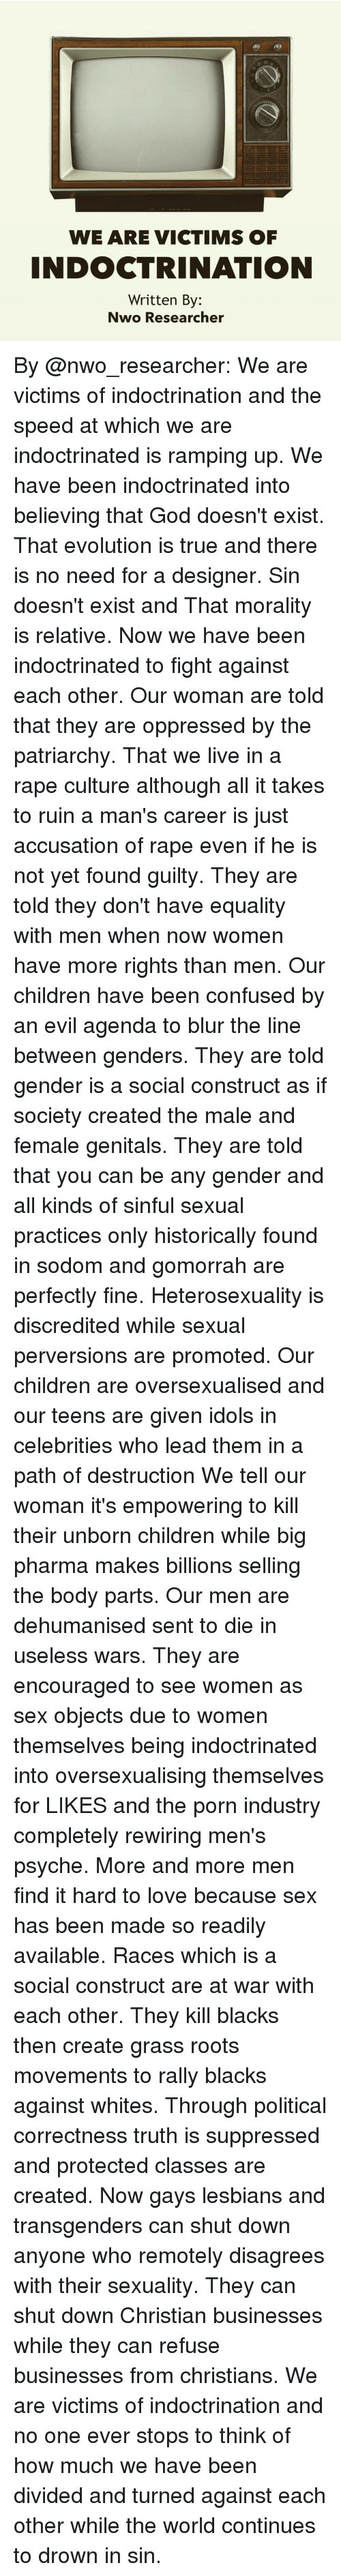 patriarchy is the root of gender